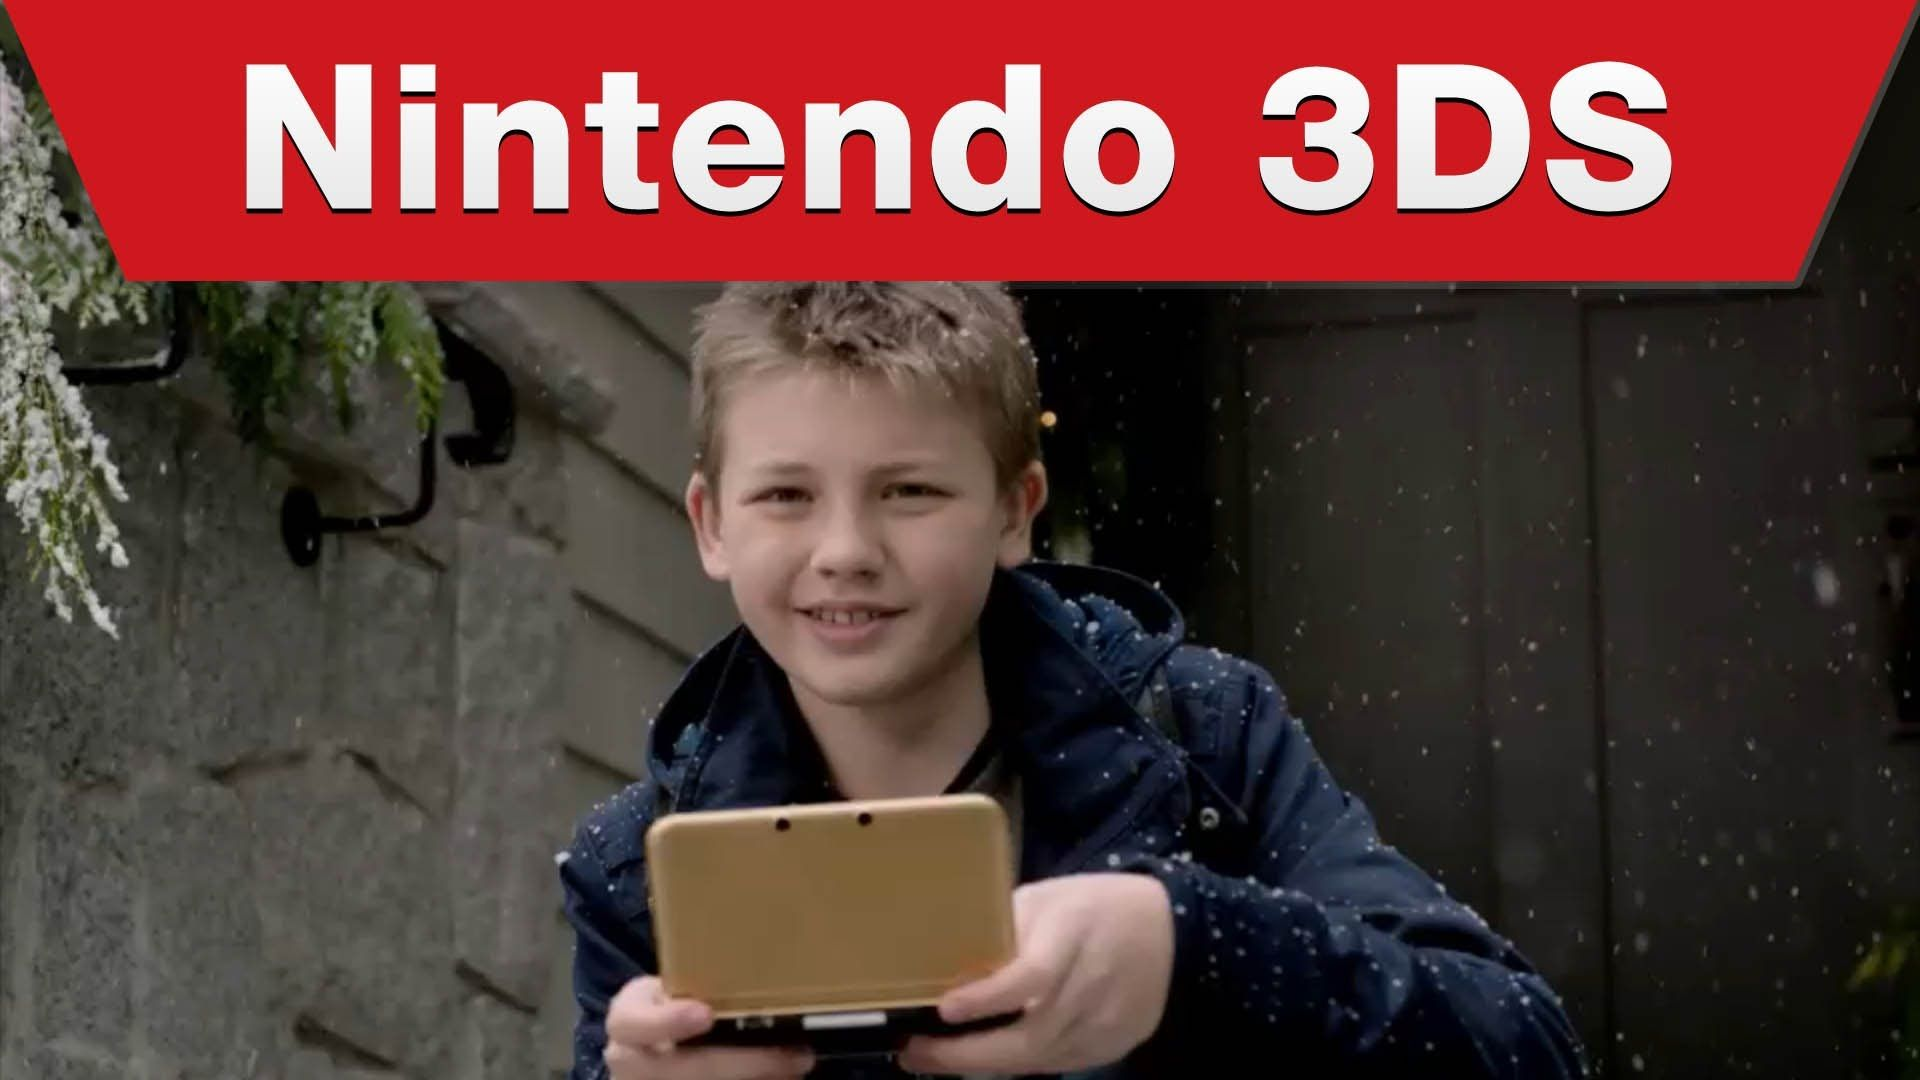 Nintendo 3DS - 3DS Holiday TV Commercial